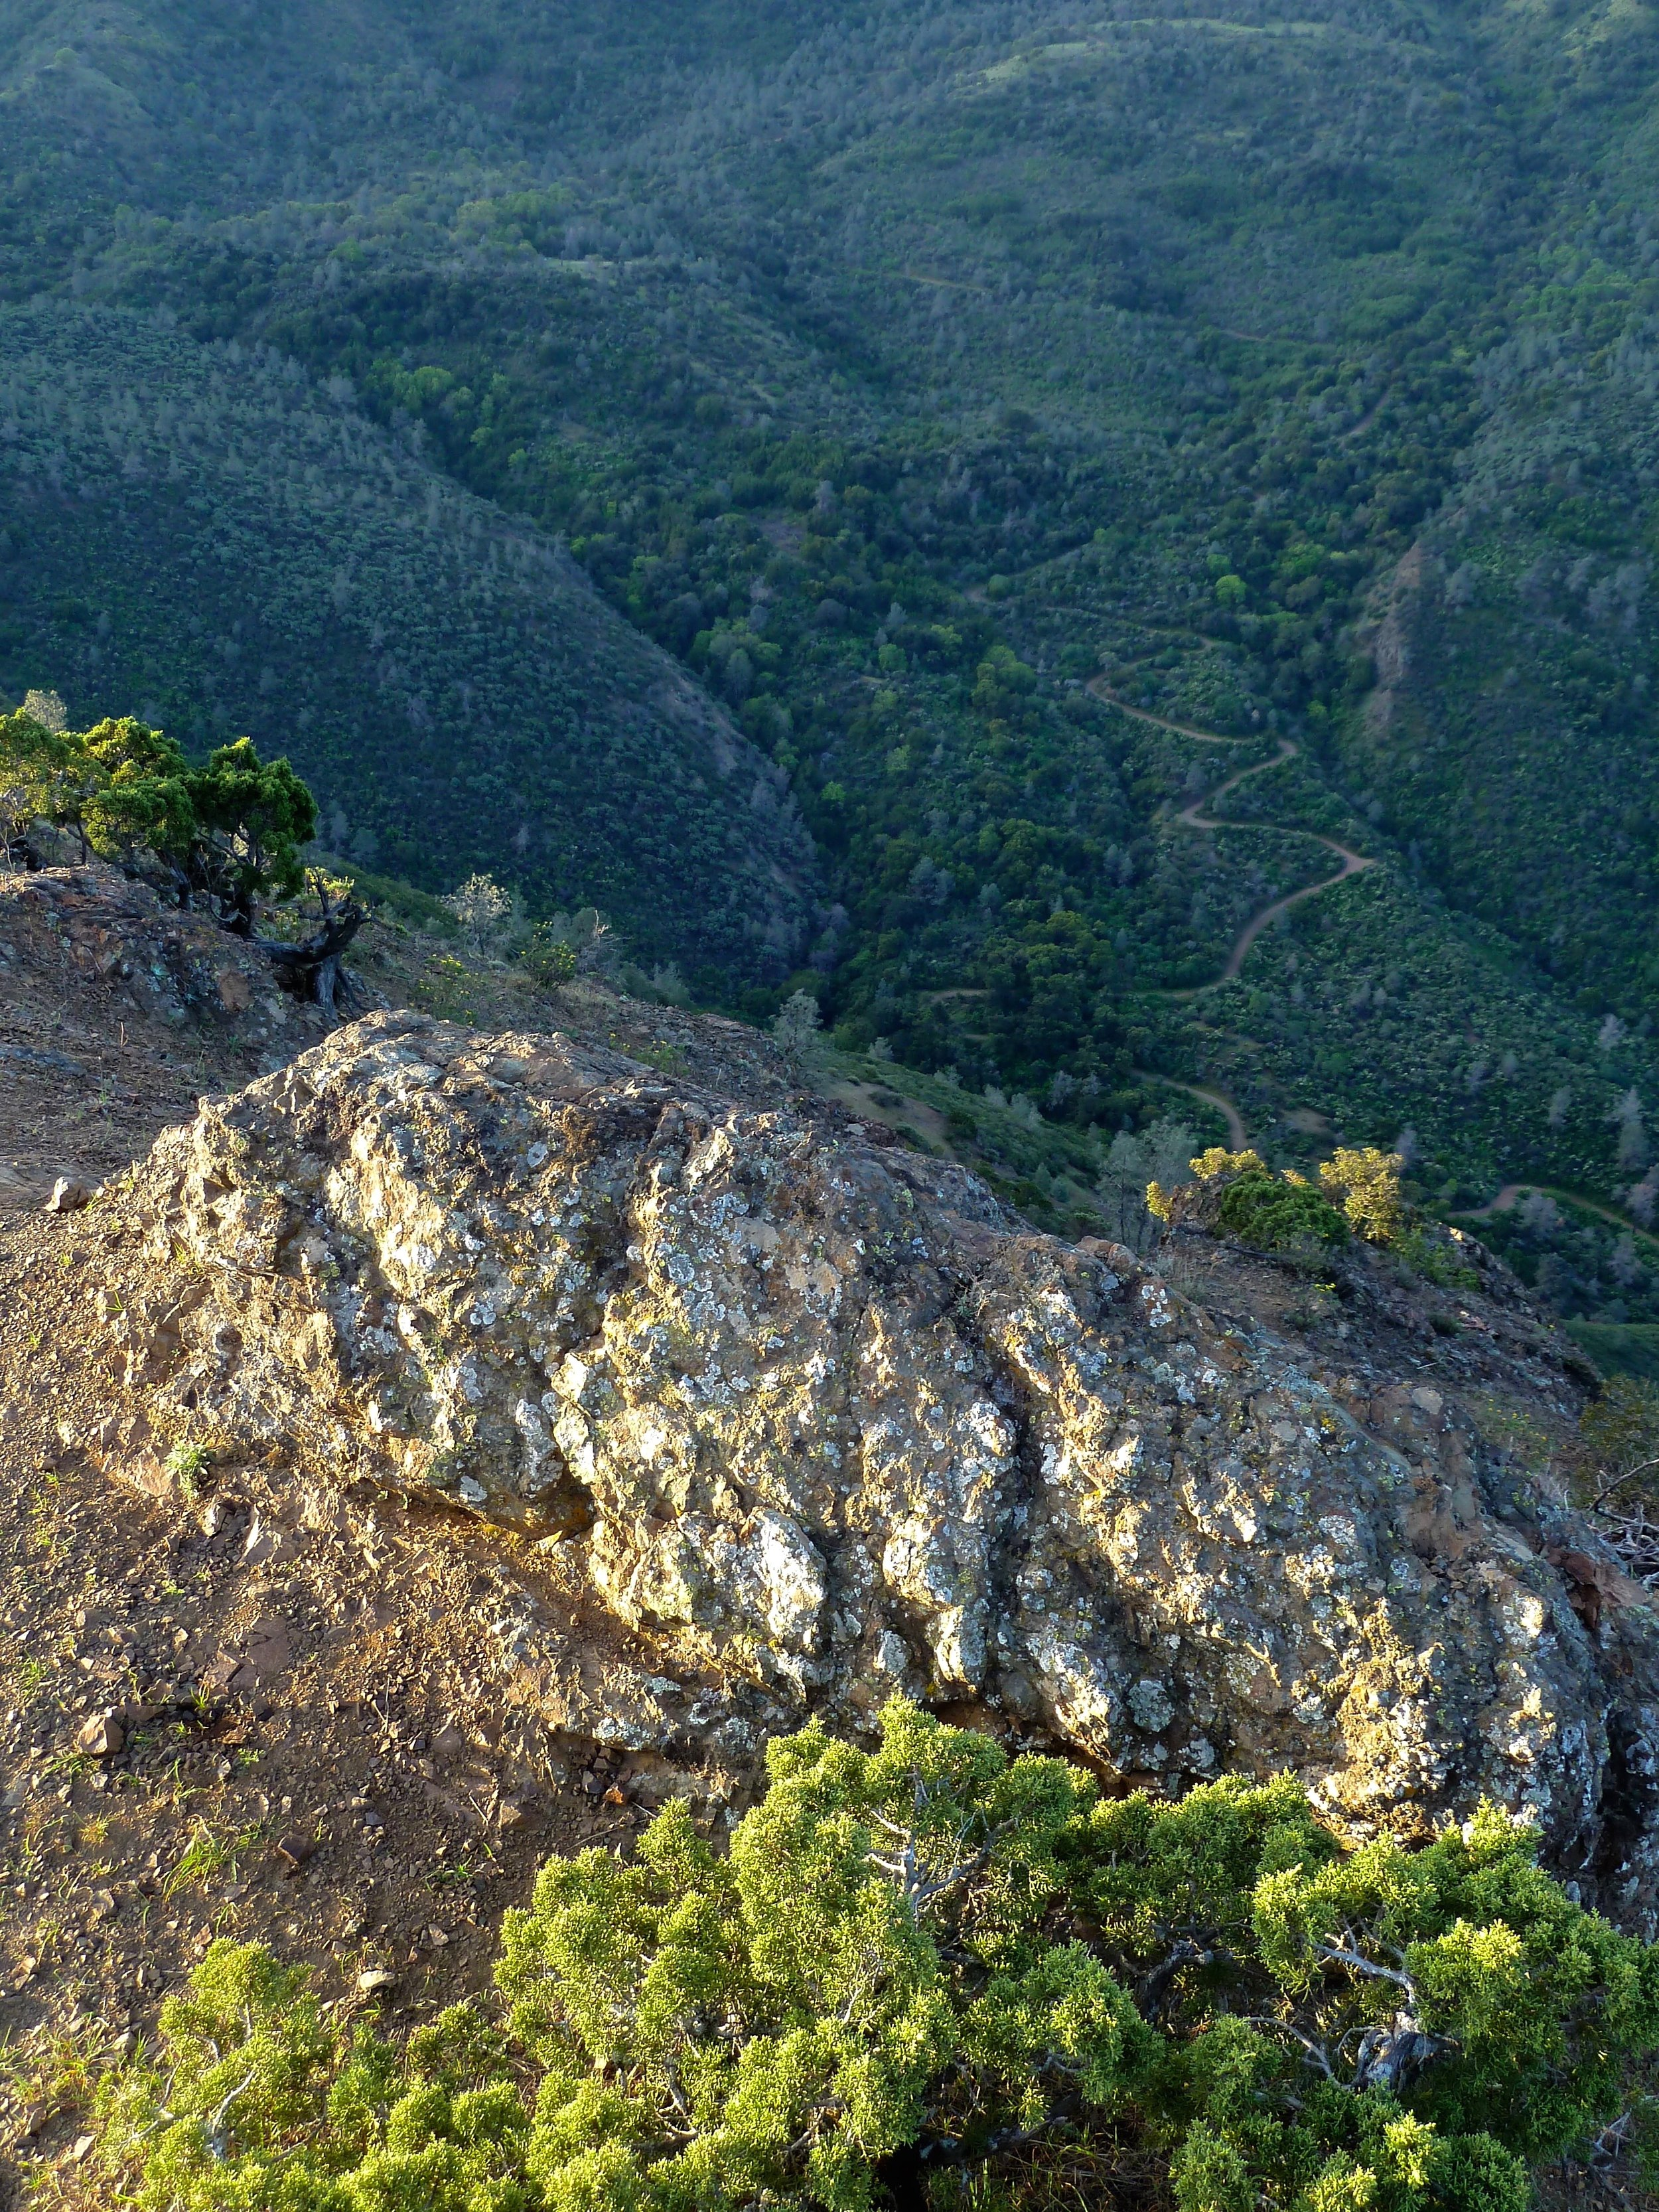 A rocky outcrop atop Mt. Diablo's Eagle Peak. Beyond, Mitchell Canyon Road snakes southward to Deer Flat.